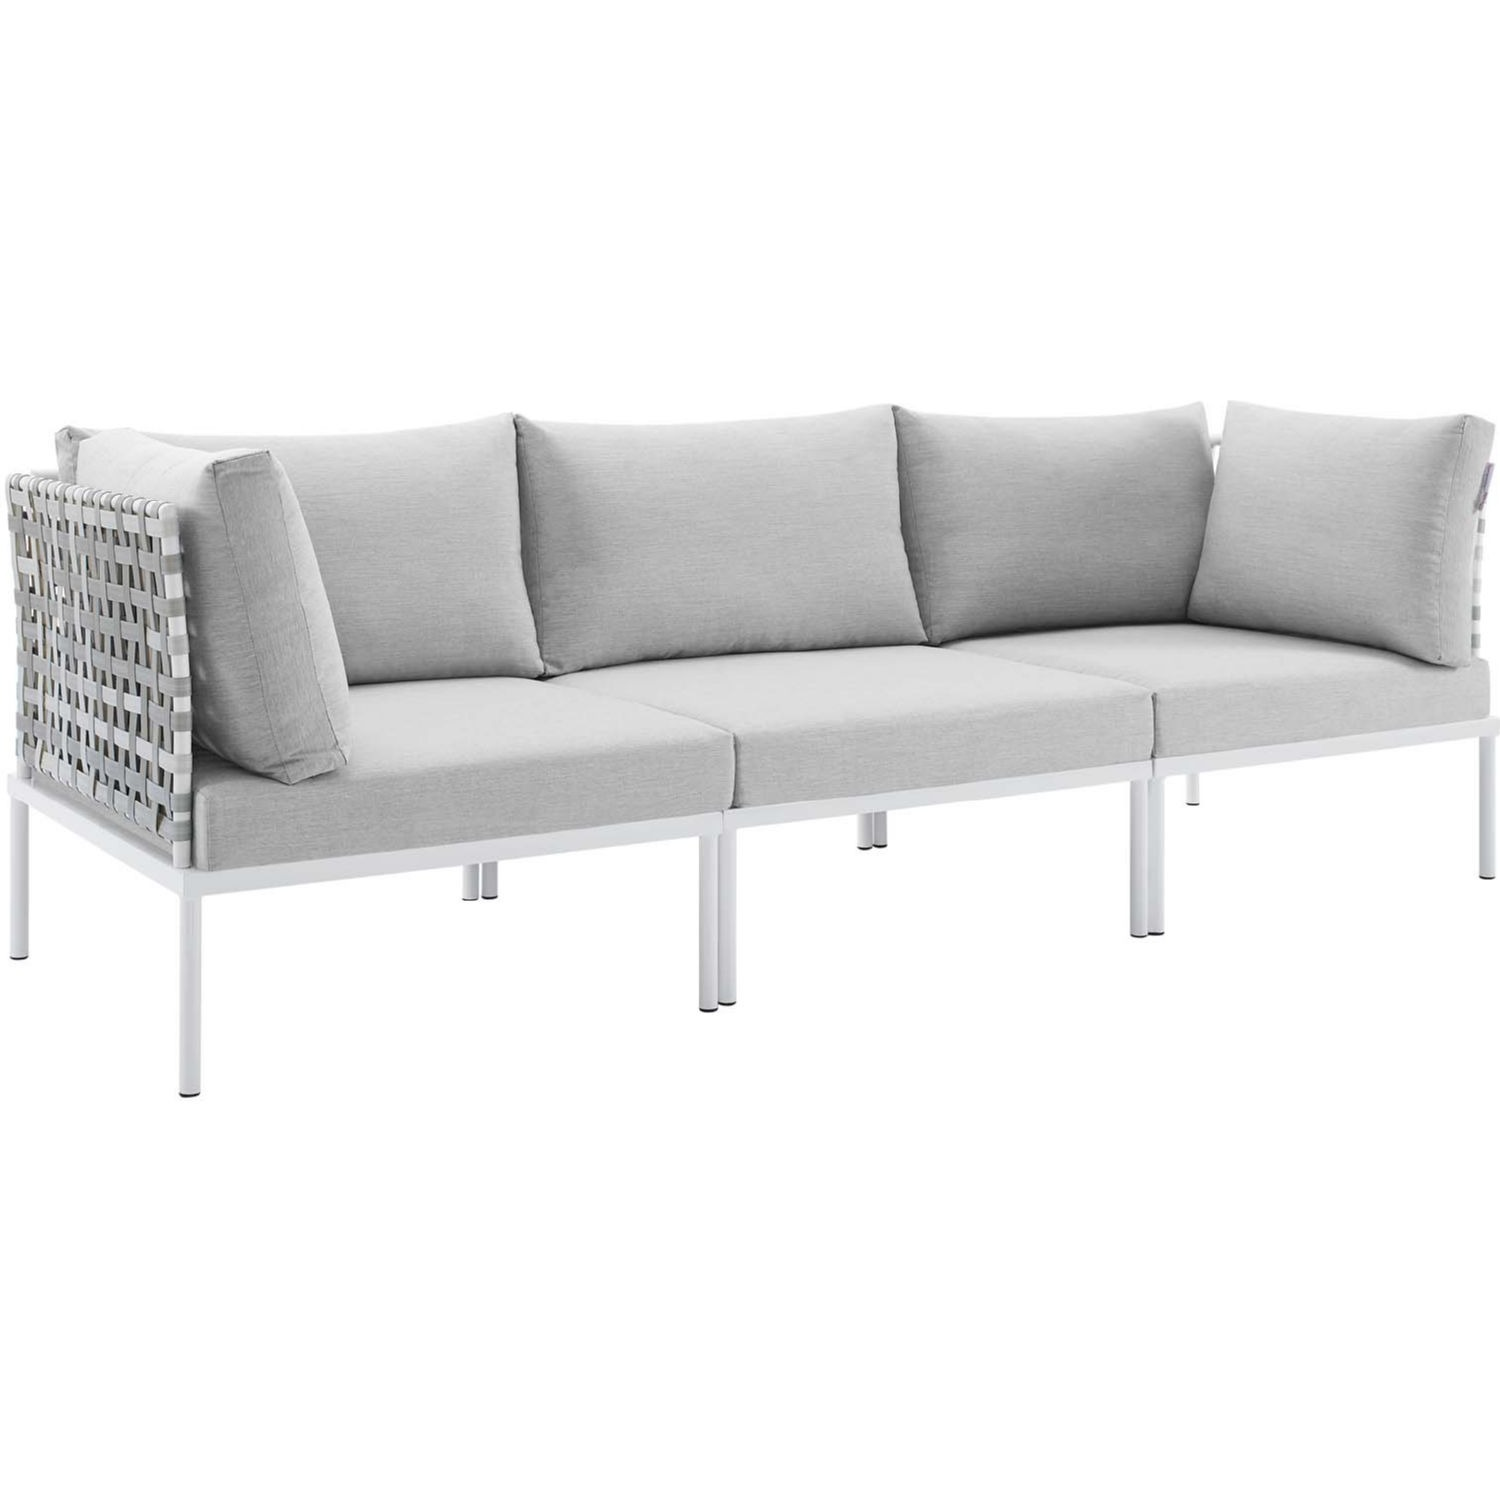 Outdoor Patio Sofa In Taupe Gray Cushion Fabric - image-0